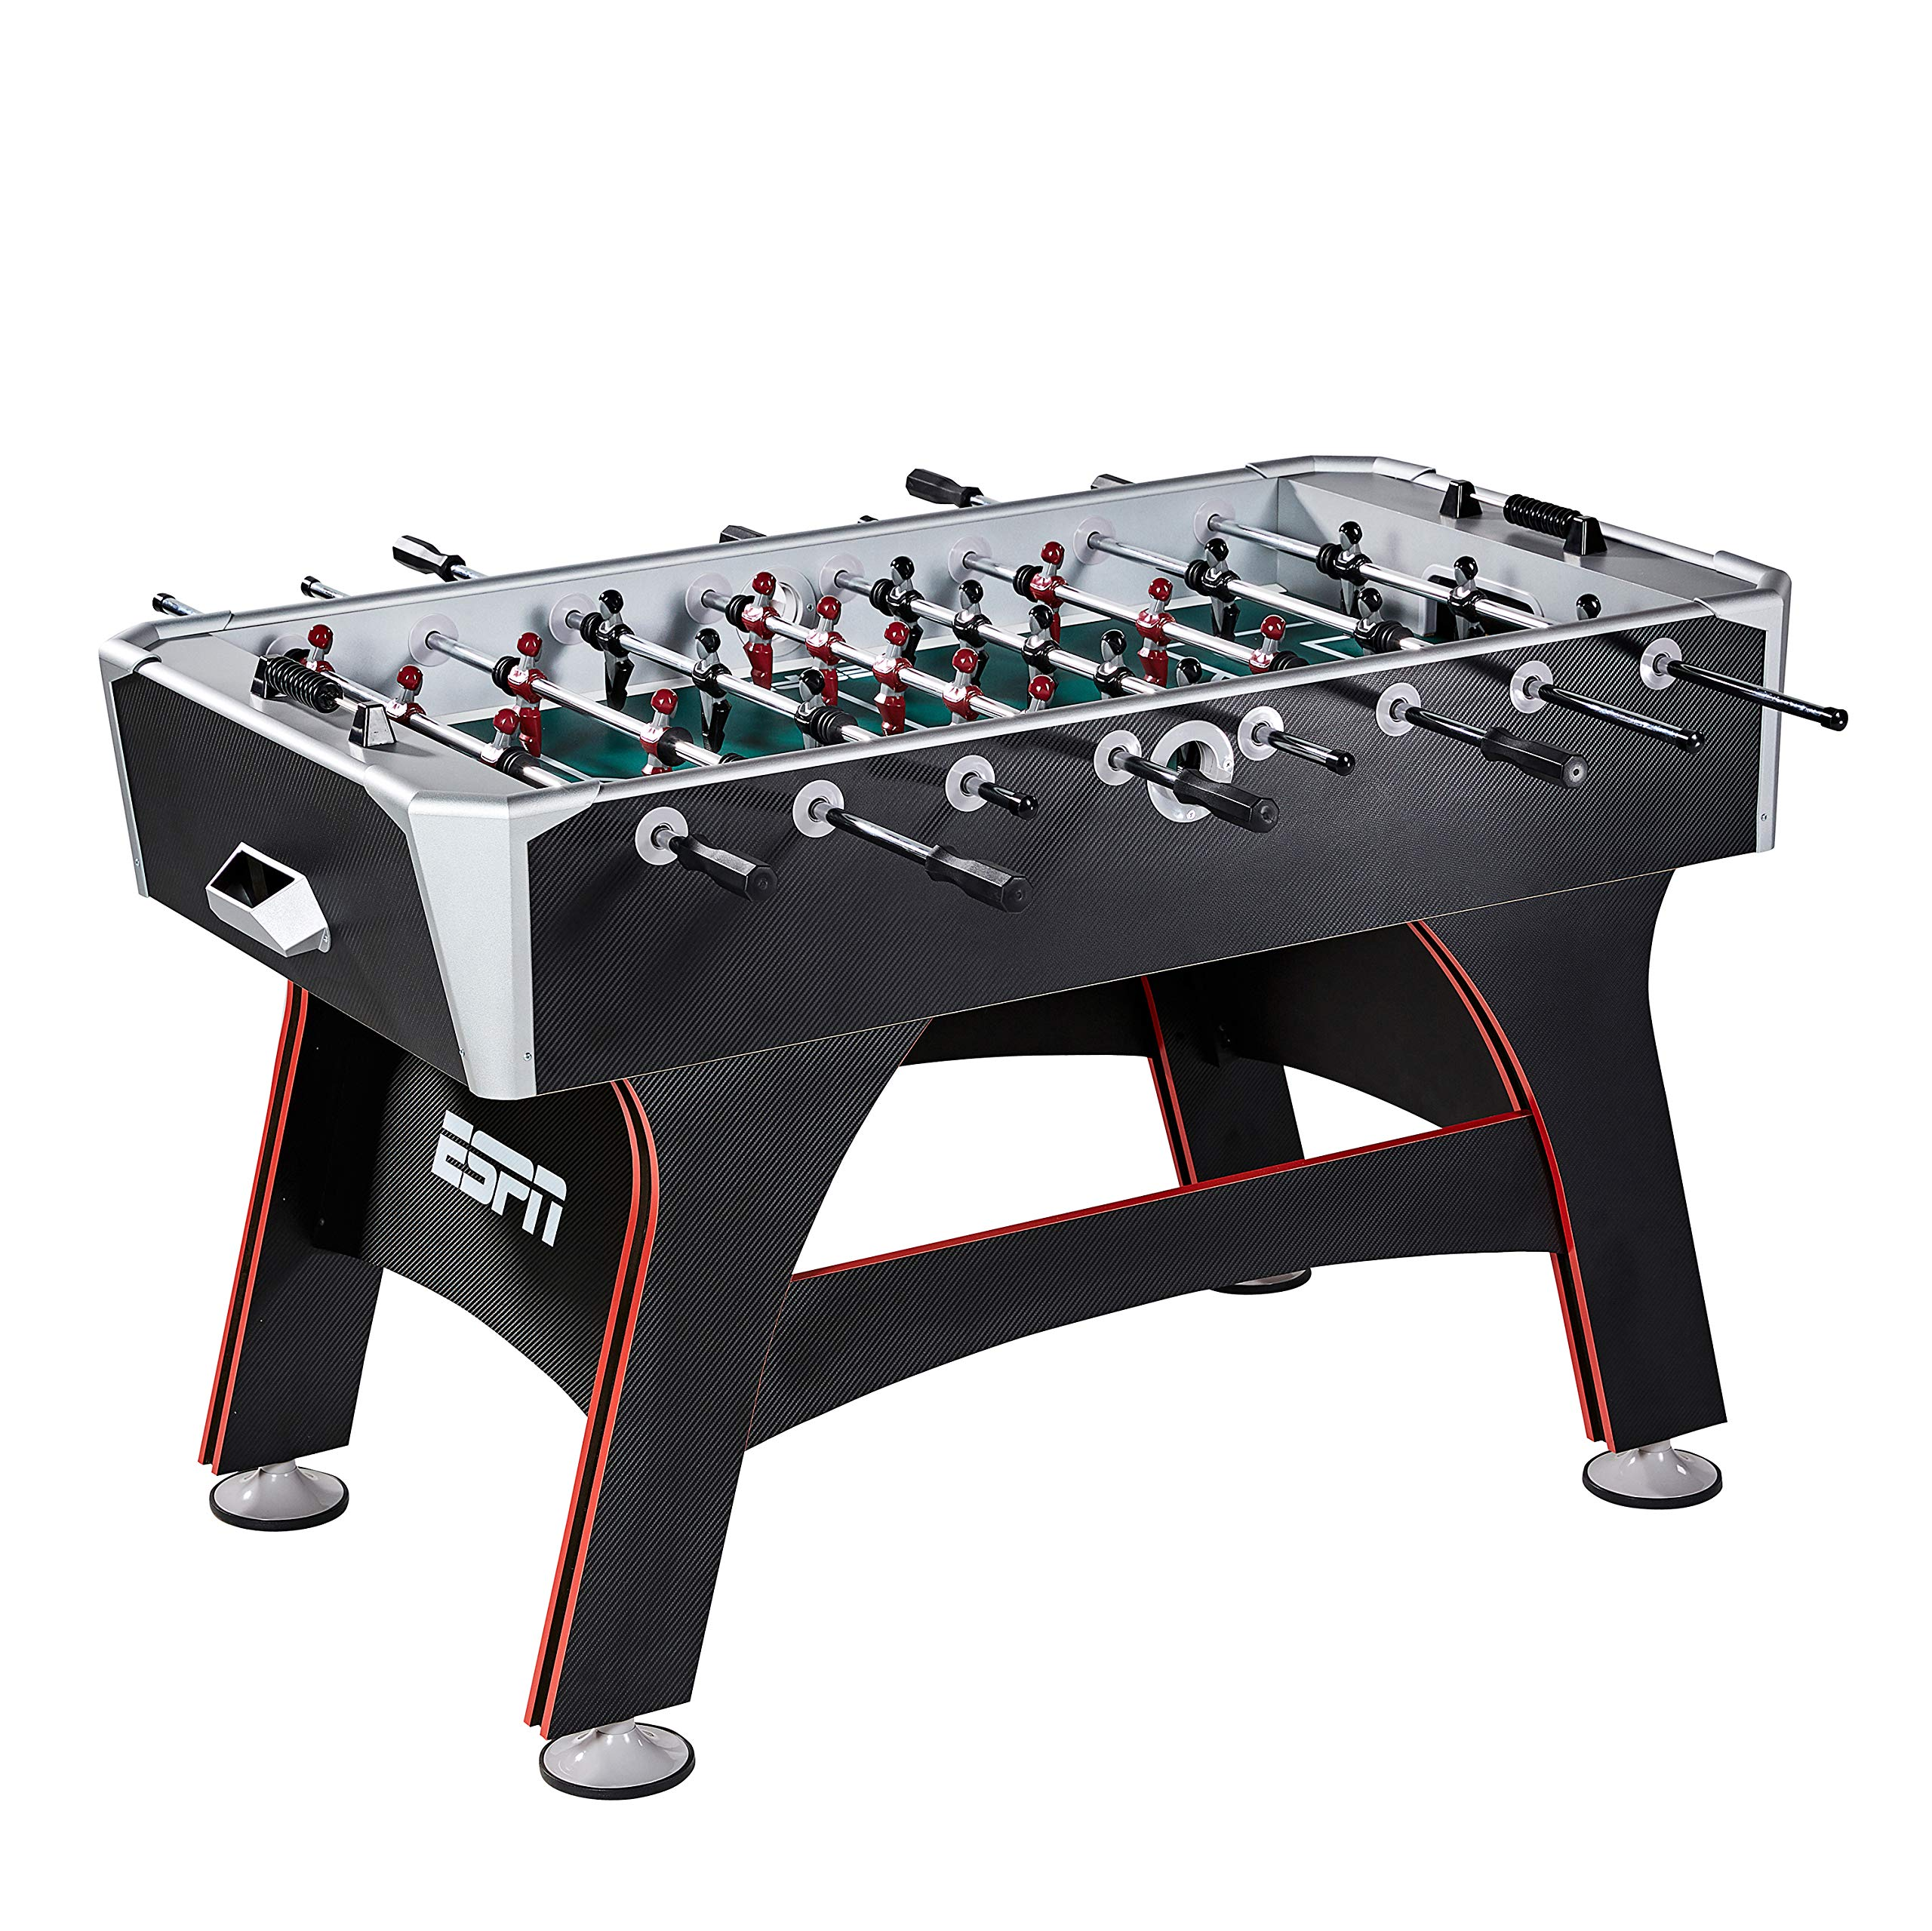 ESPN SOC056_218E 56'' Arcade Foosball Table by ESPN